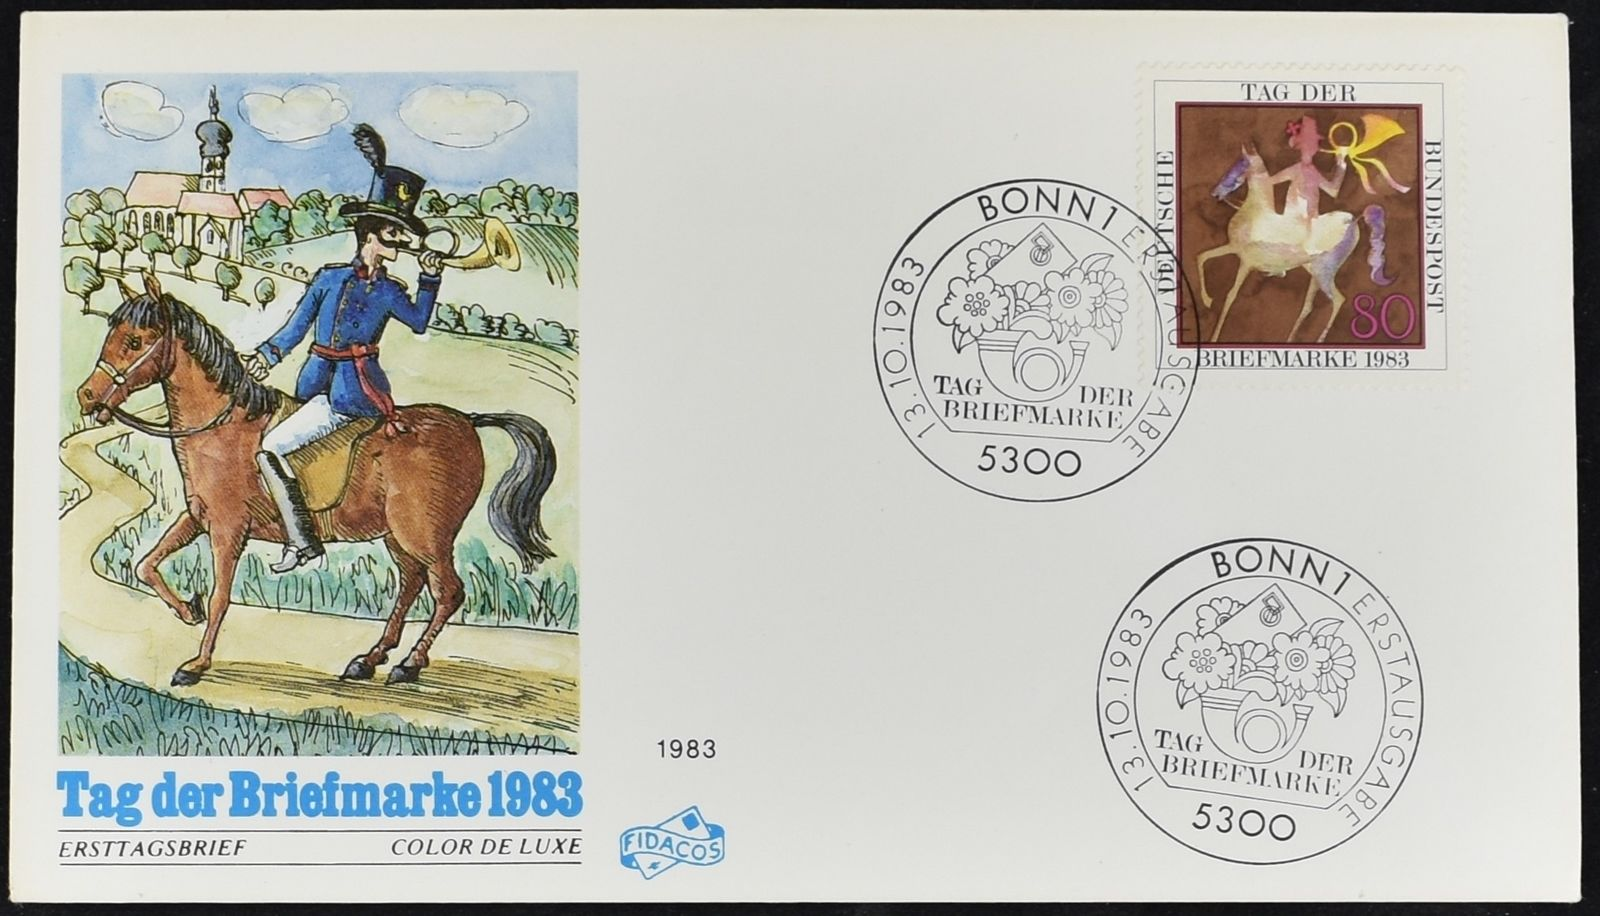 Germany - Scott #1405 (1983) first day cover